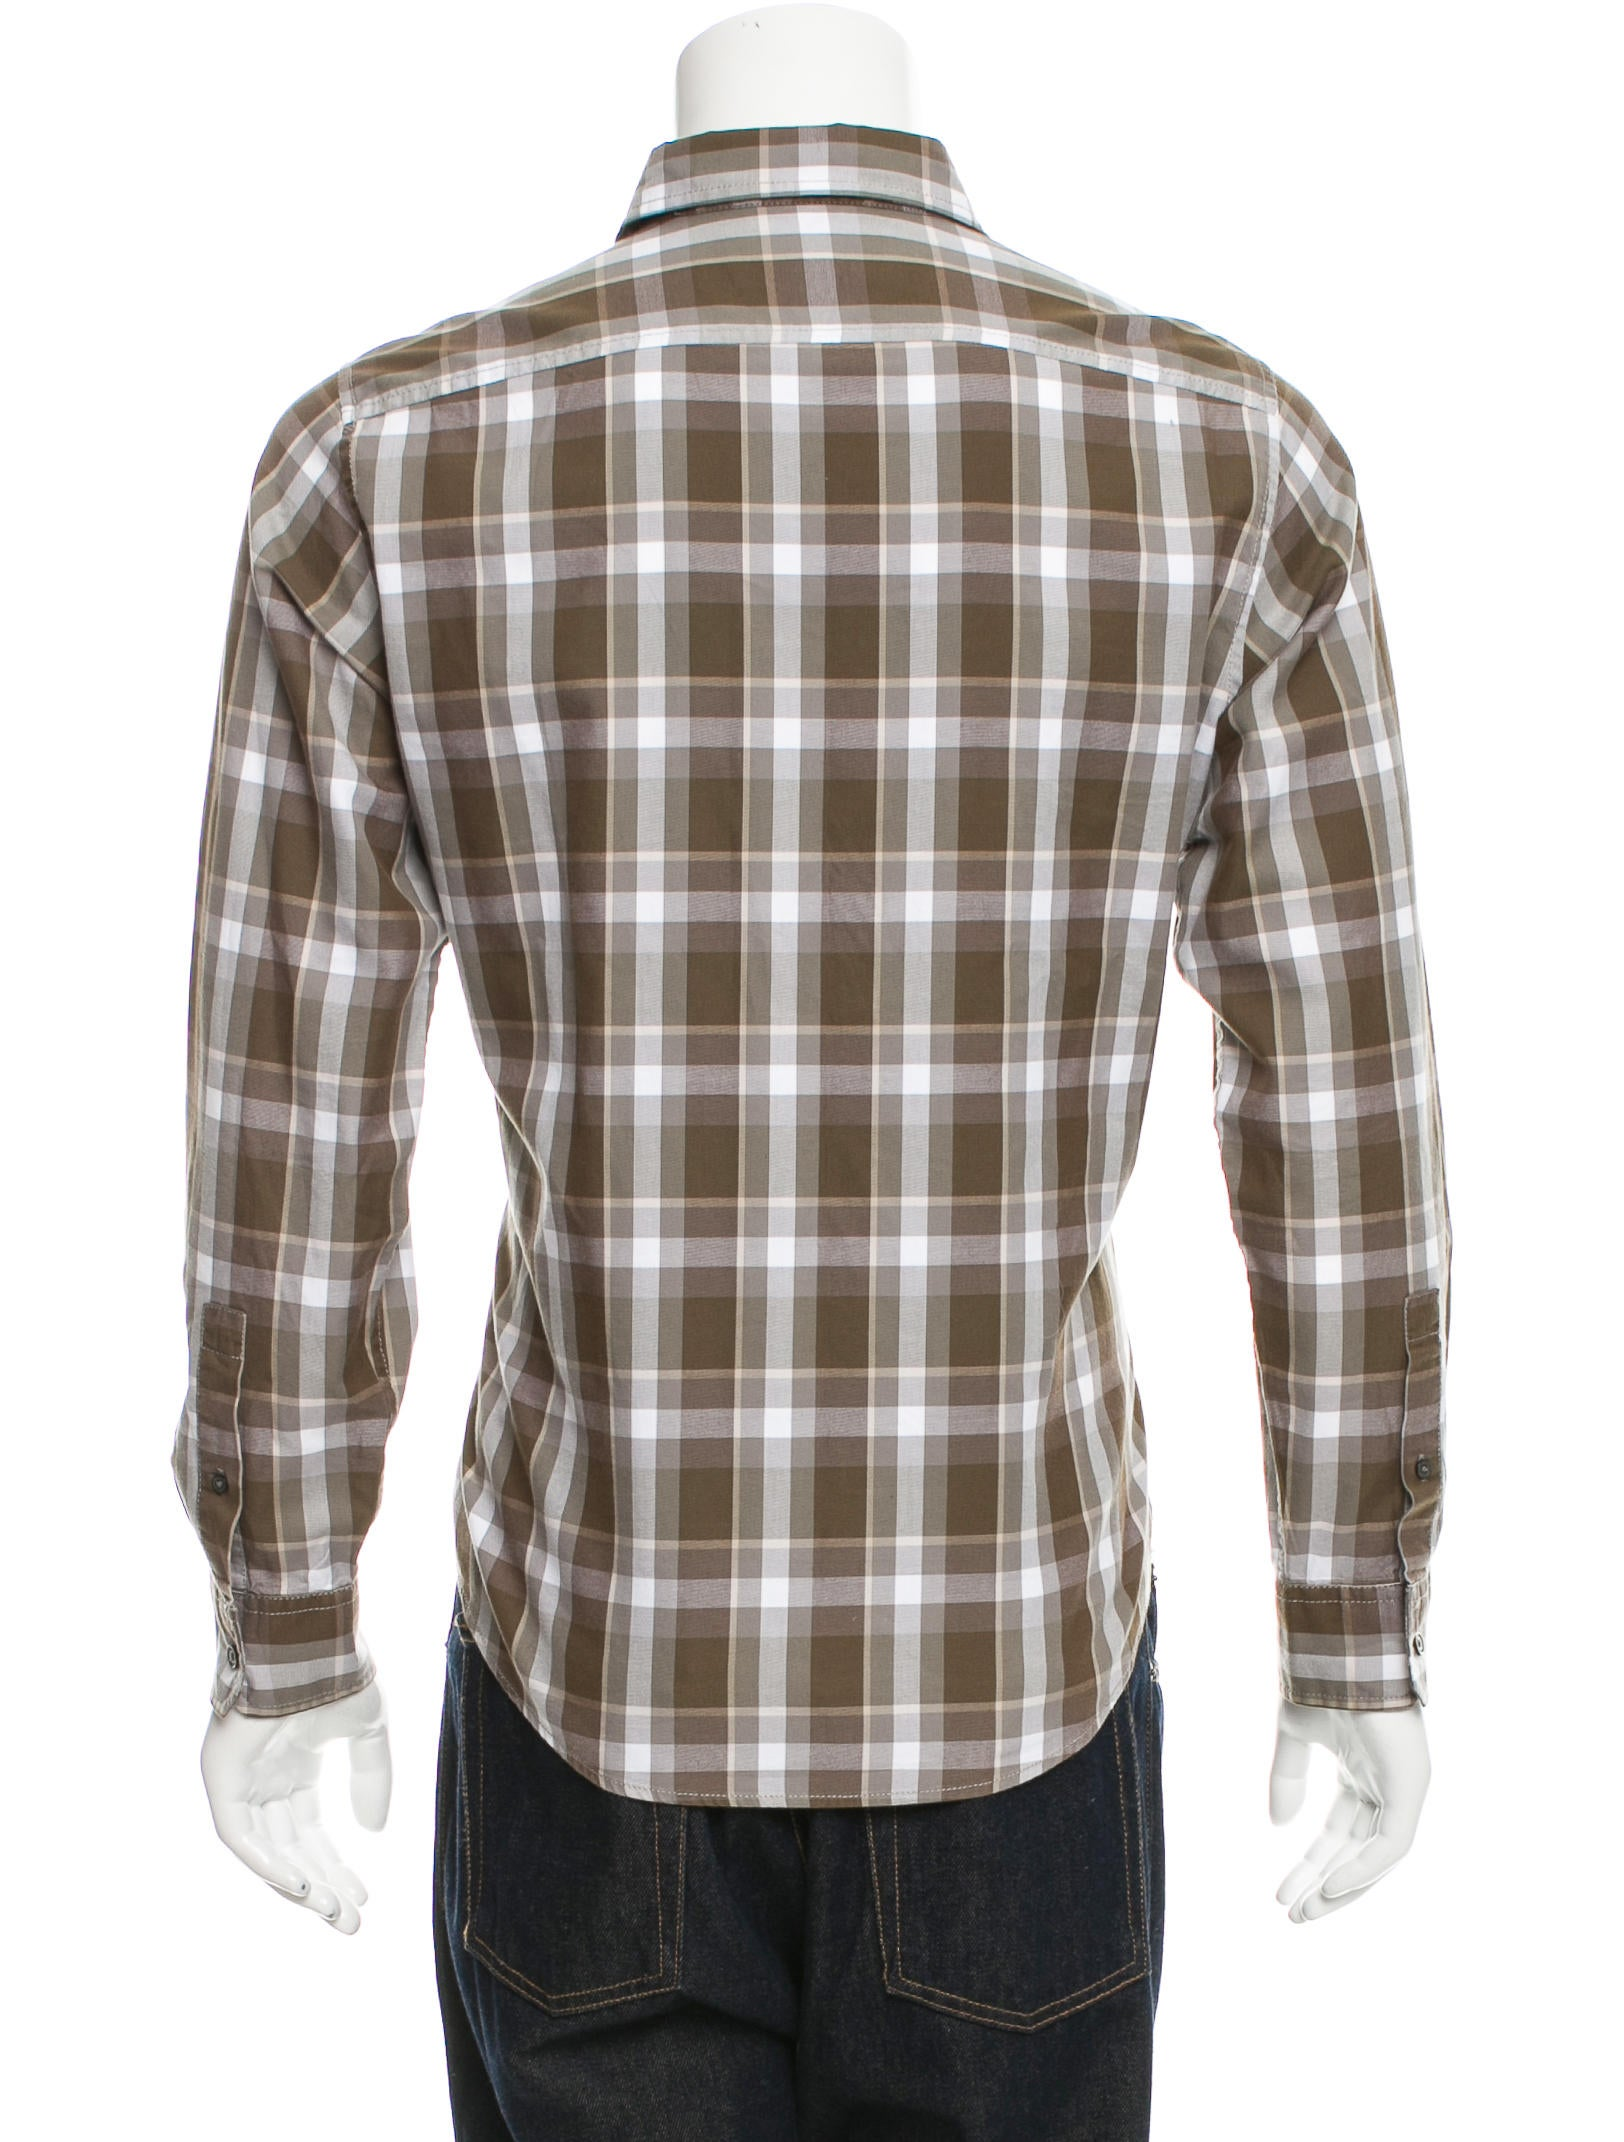 Michael kors plaid button up shirt clothing mic51518 for White shirt brown buttons